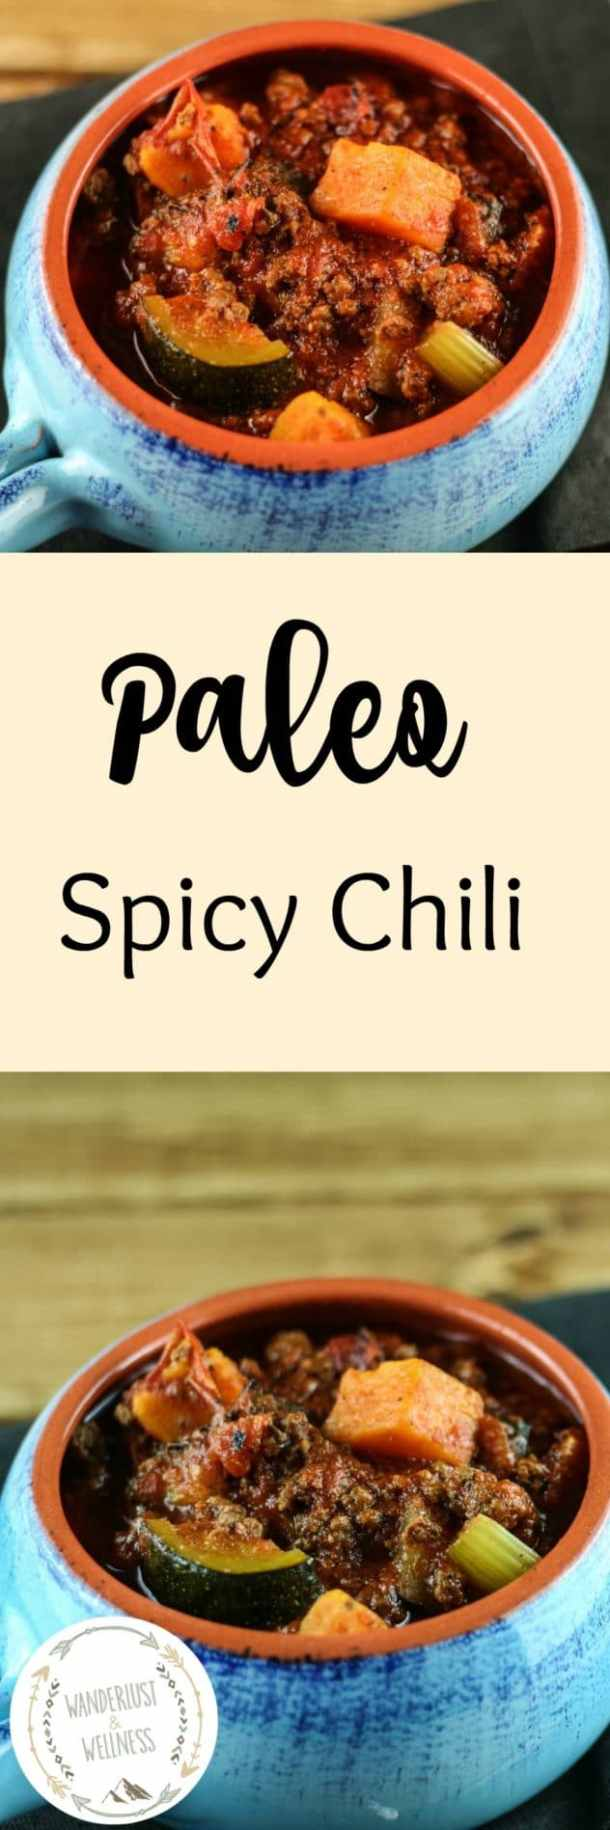 Paleo Spicy Chili